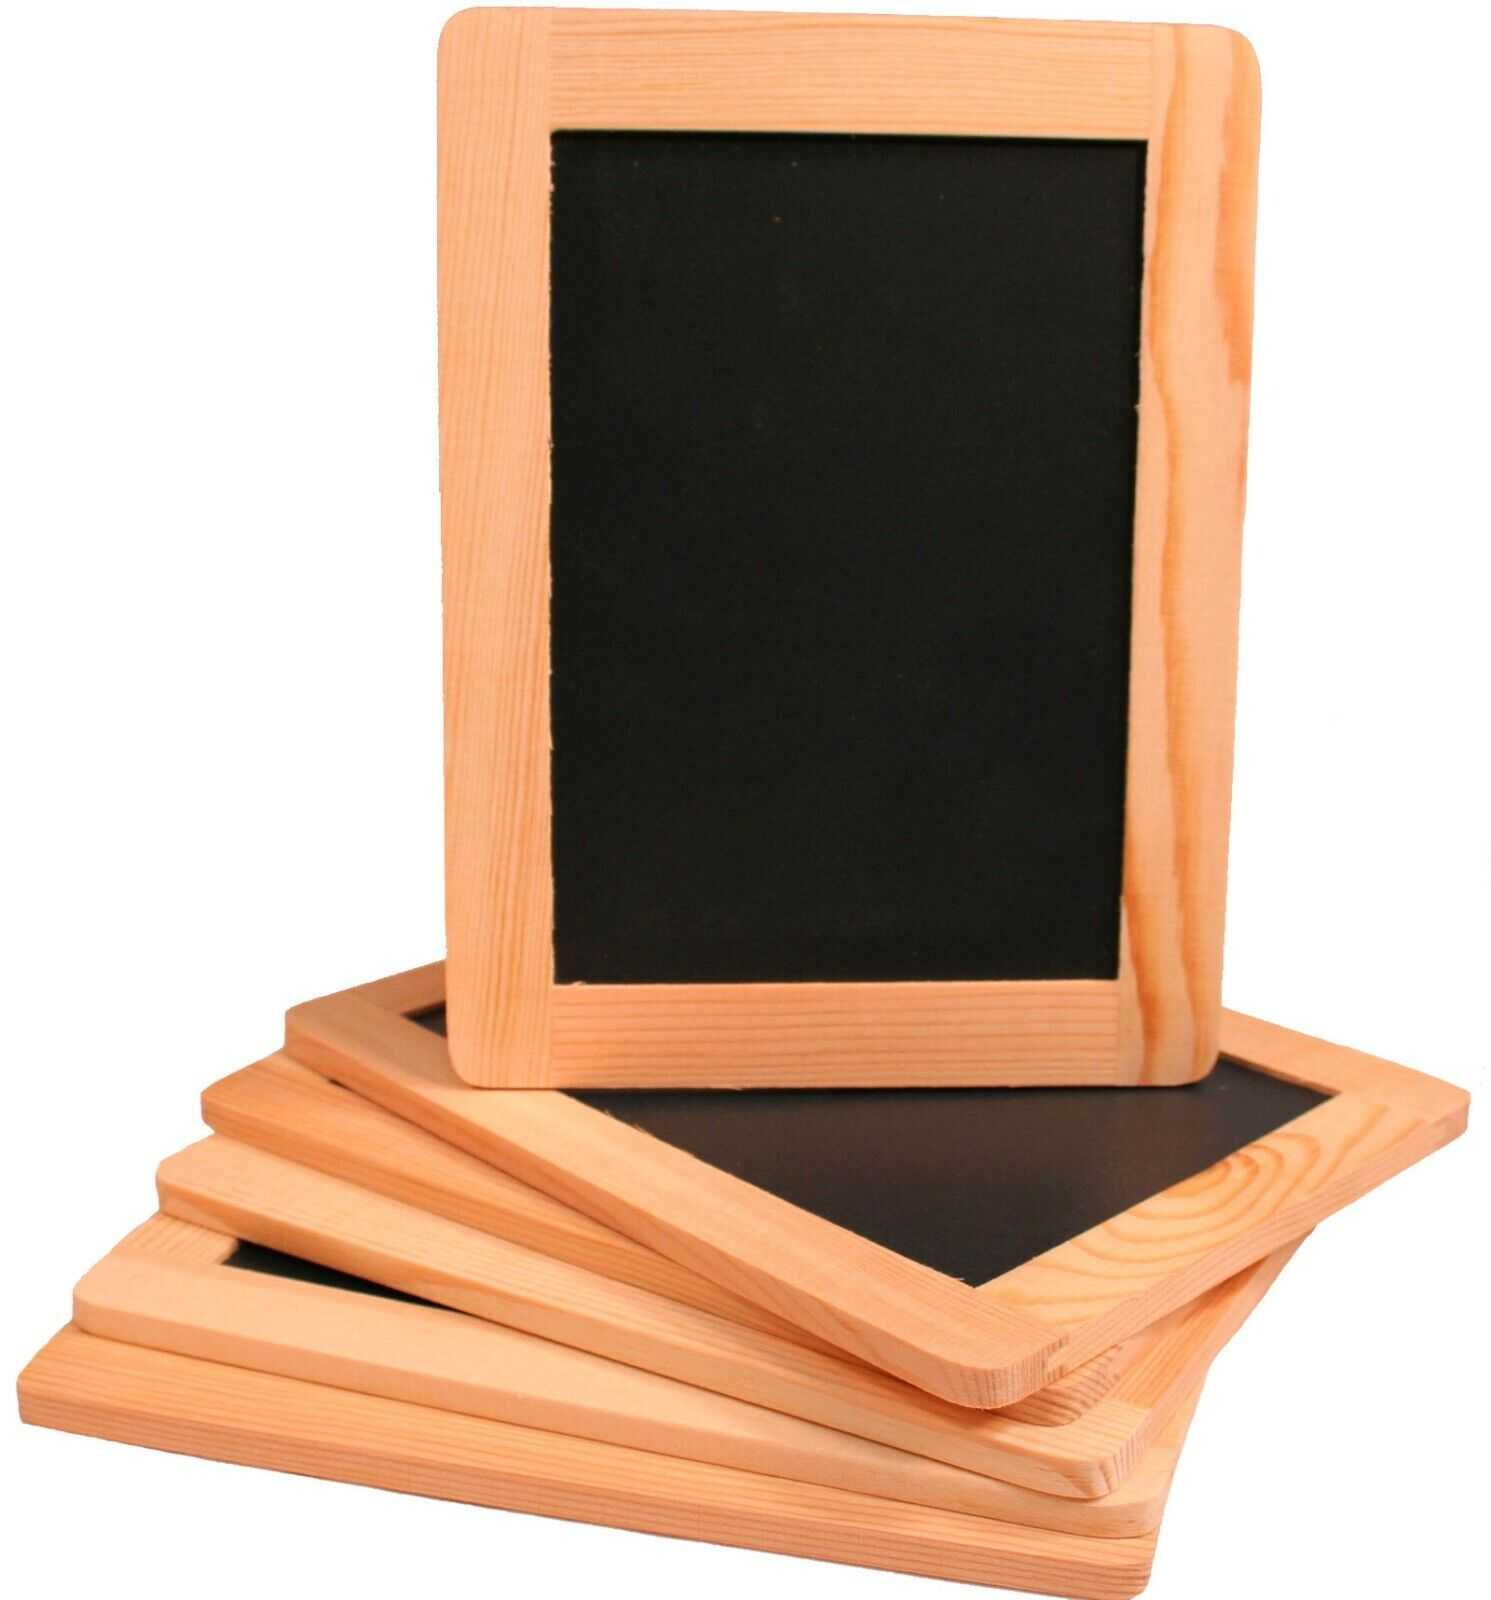 Creative Hobbies 4 x 6 Inch Synthetic Chalkboard w/ Unfinished Wood Frame 6 Pack Home & Garden